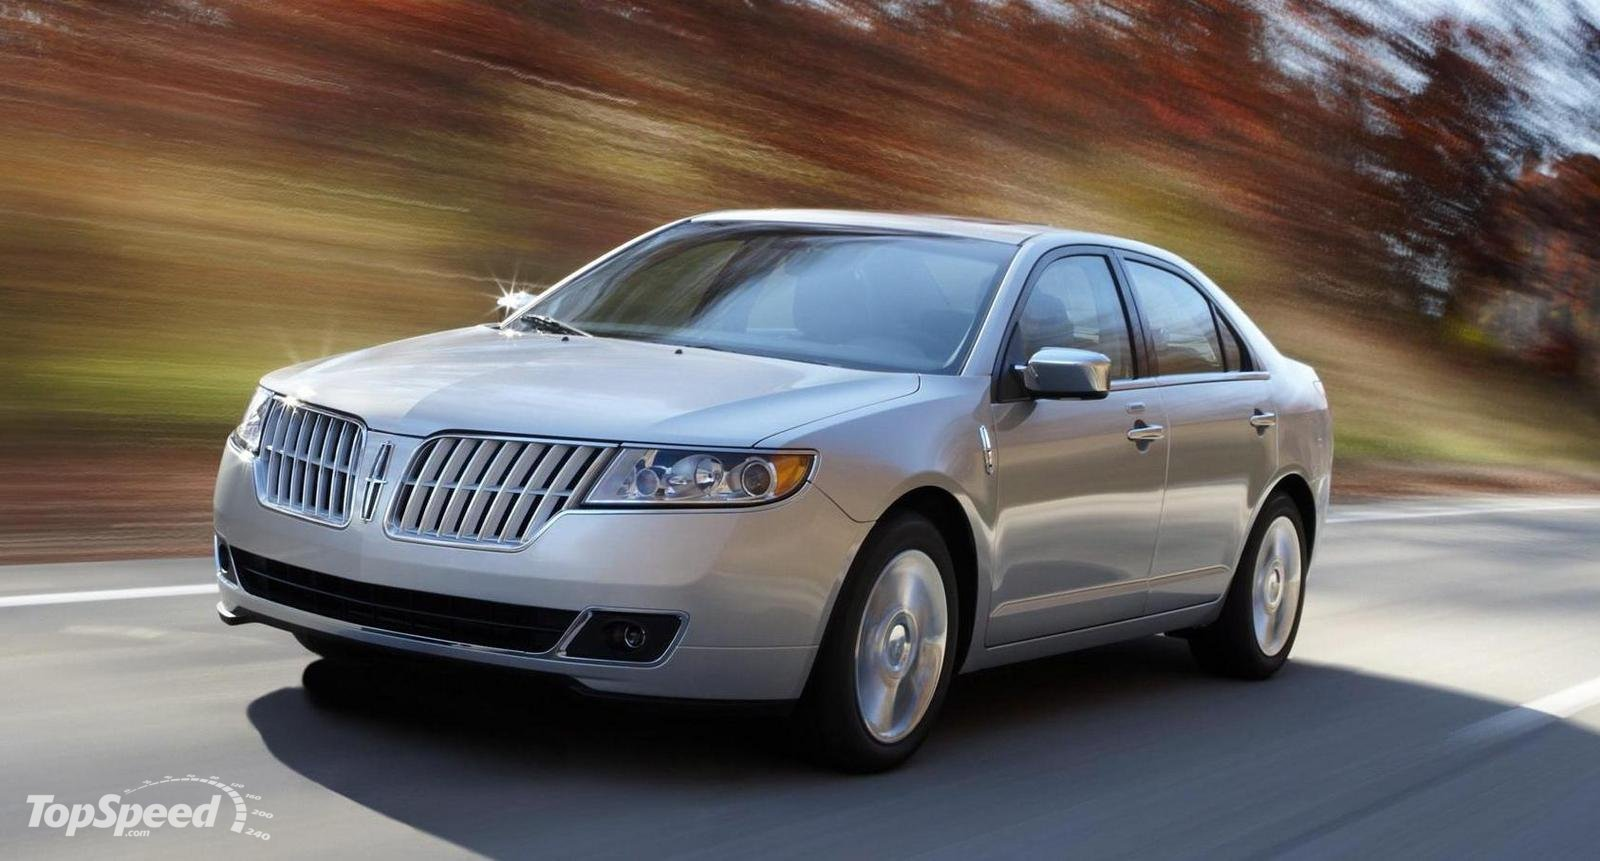 2010 lincoln mkz information cars top ten reviews and specs. Black Bedroom Furniture Sets. Home Design Ideas